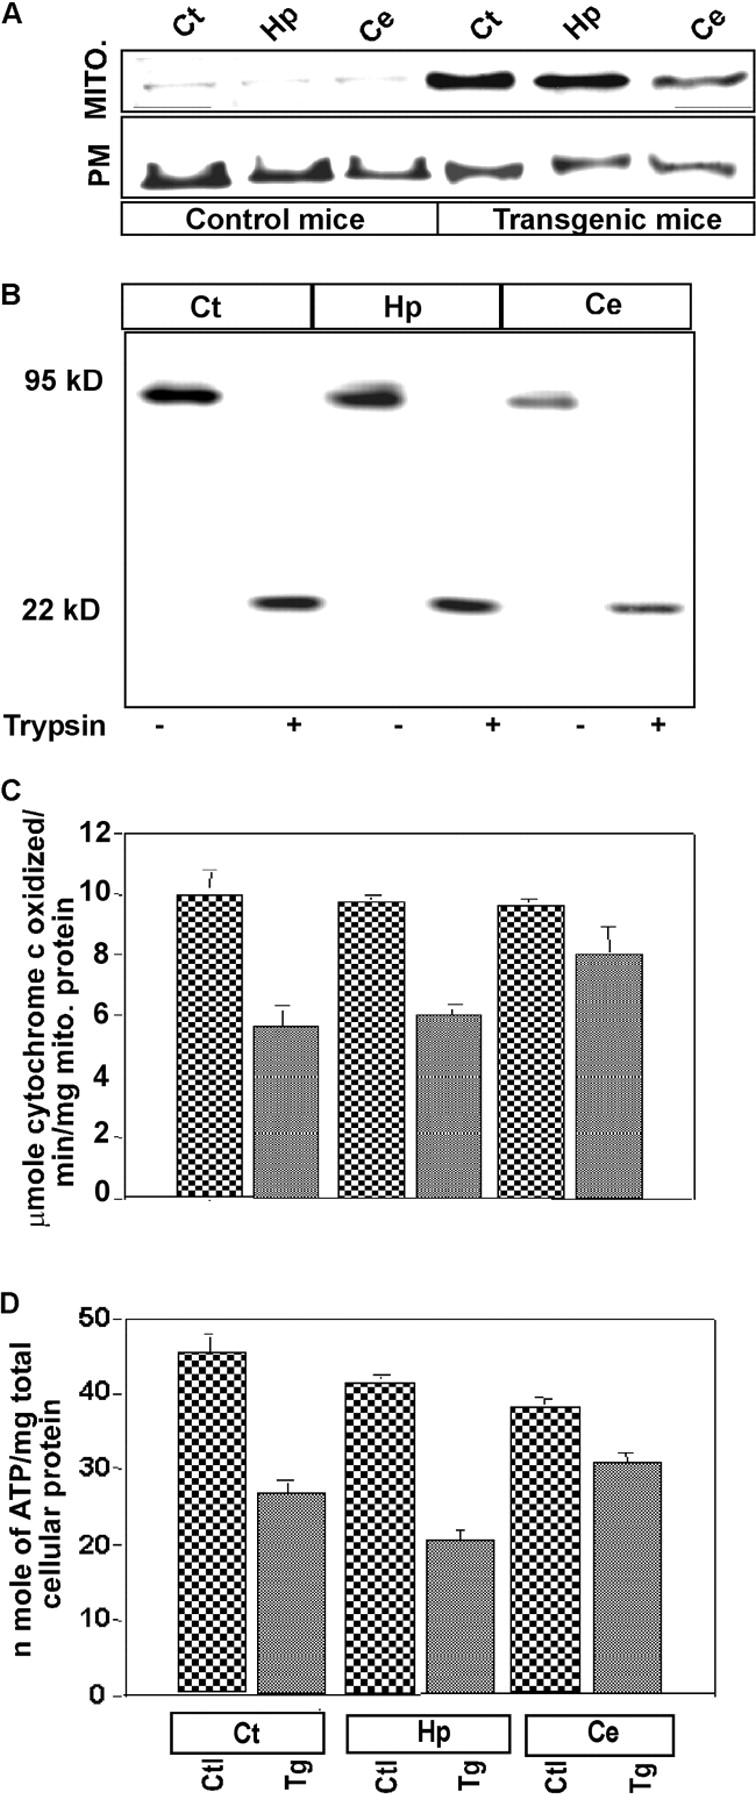 Mitochondrial-associated APP in the brains of transgenic mice overexpressing APP. (A) Mitochondria and PM fractions from different brain regions of control and SWEAPP (2576) transgenic mice (50 μg protein each) were subjected to immunoblot analysis using APP Nt Ab. (B) Mitochondria (50 μg) from different brain regions of transgenic mice overexpressing SW/APP (SWEAPP [2576]) were subjected to trypsin treatment (as described in Fig. 2 ) followed by immunoblot analysis with APP Nt Ab. (C) CytOX activity in total mitochondrial membrane fraction and (D) total cellular ATP levels were assayed as described in the Materials and methods. MITO., mitochondria; Ctl, control; Tg, transgenic; Ct, cortex; Hp, hippocampus; Ce, cerebellum.